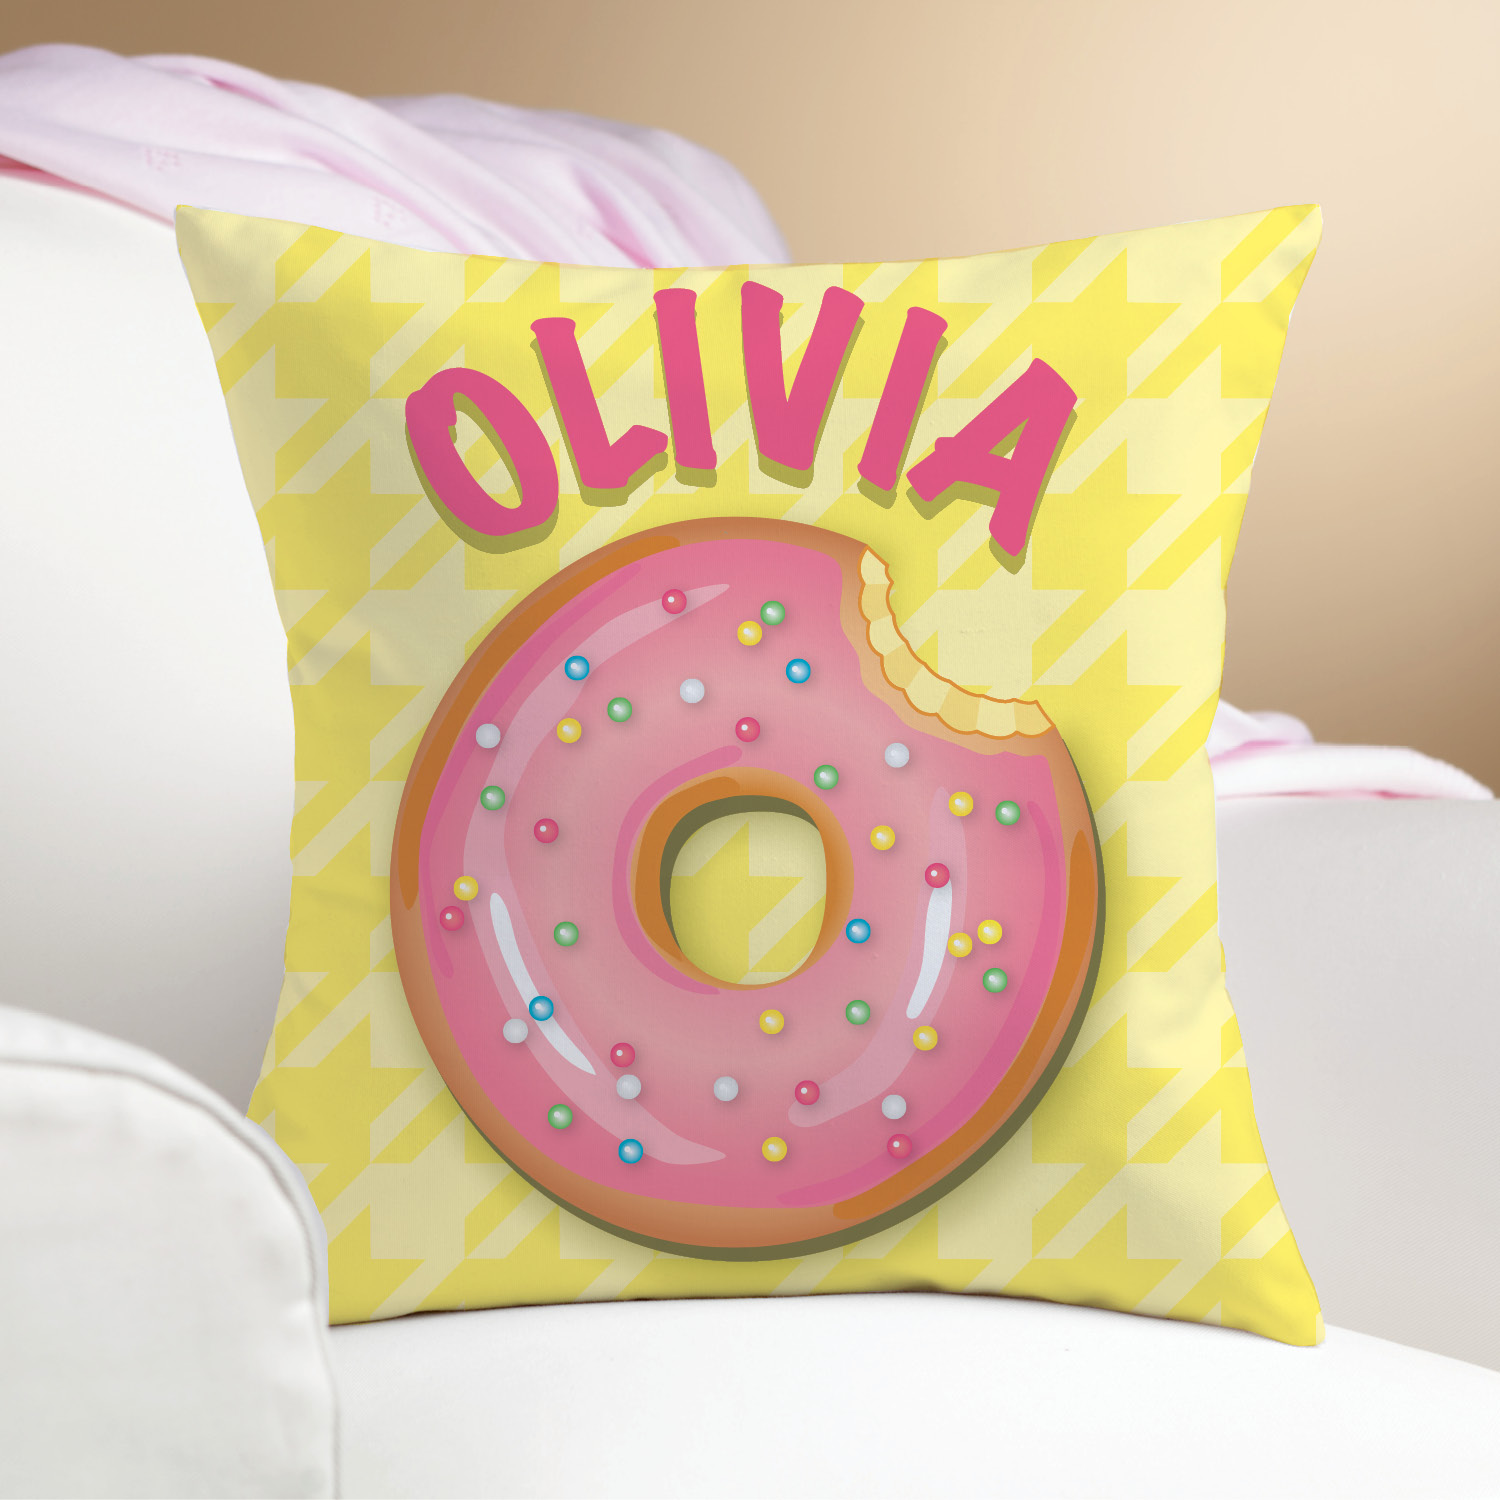 Yummy Donut Personalize Pillow---Yellow | Personalized Planet